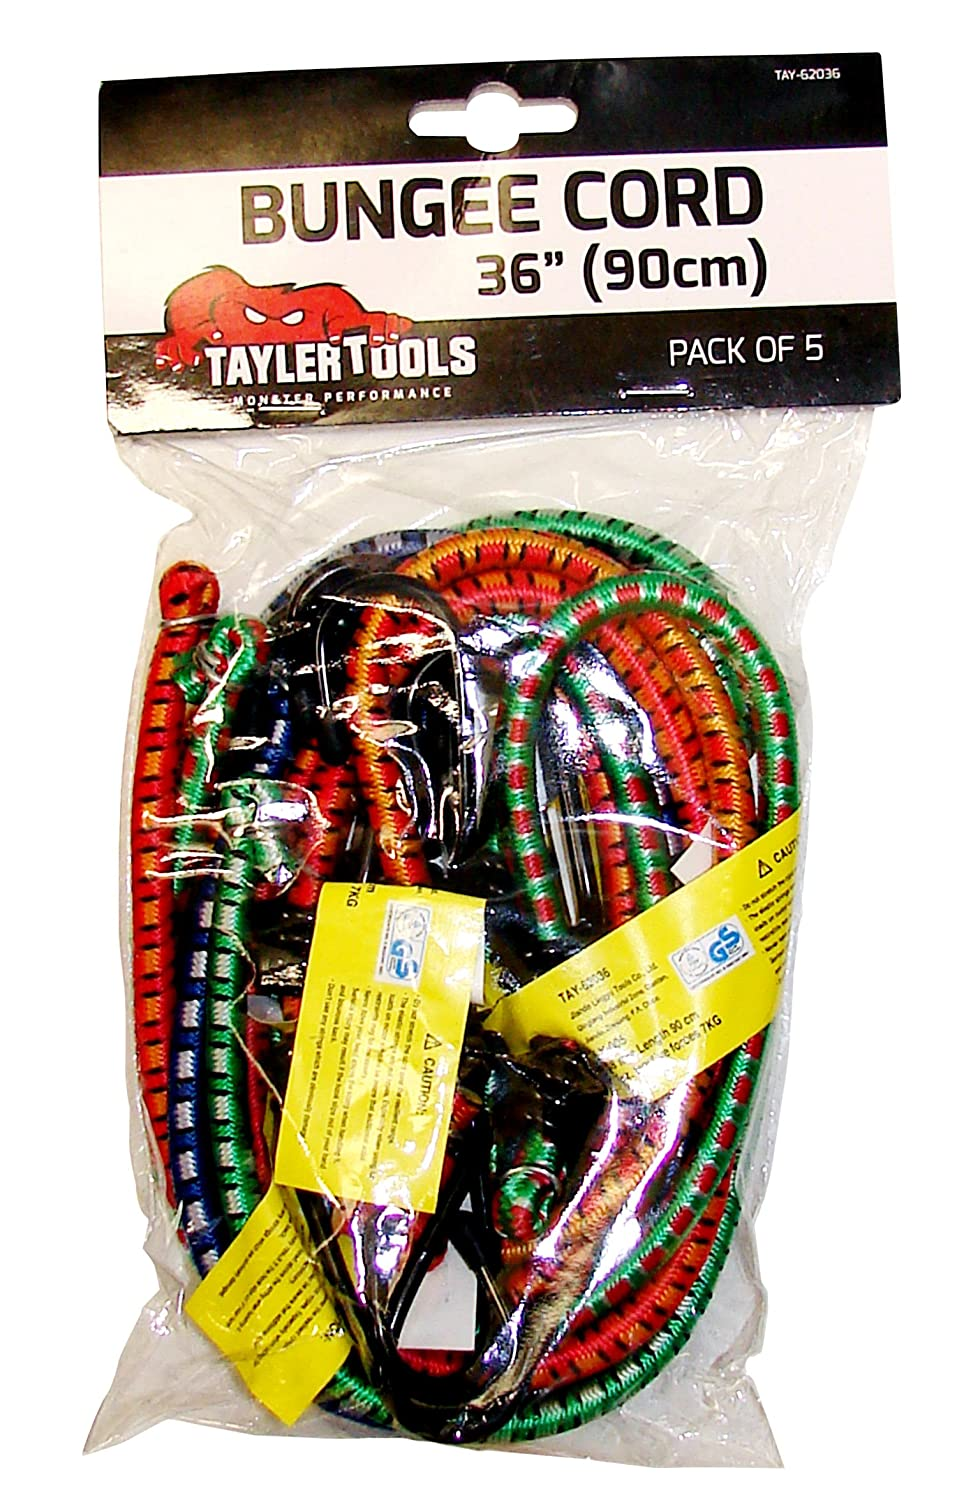 Taylor Tools TAY-62036 Heavy Duty Bungee Cord 90cm/36 5 Pack, Set of 5 Pieces